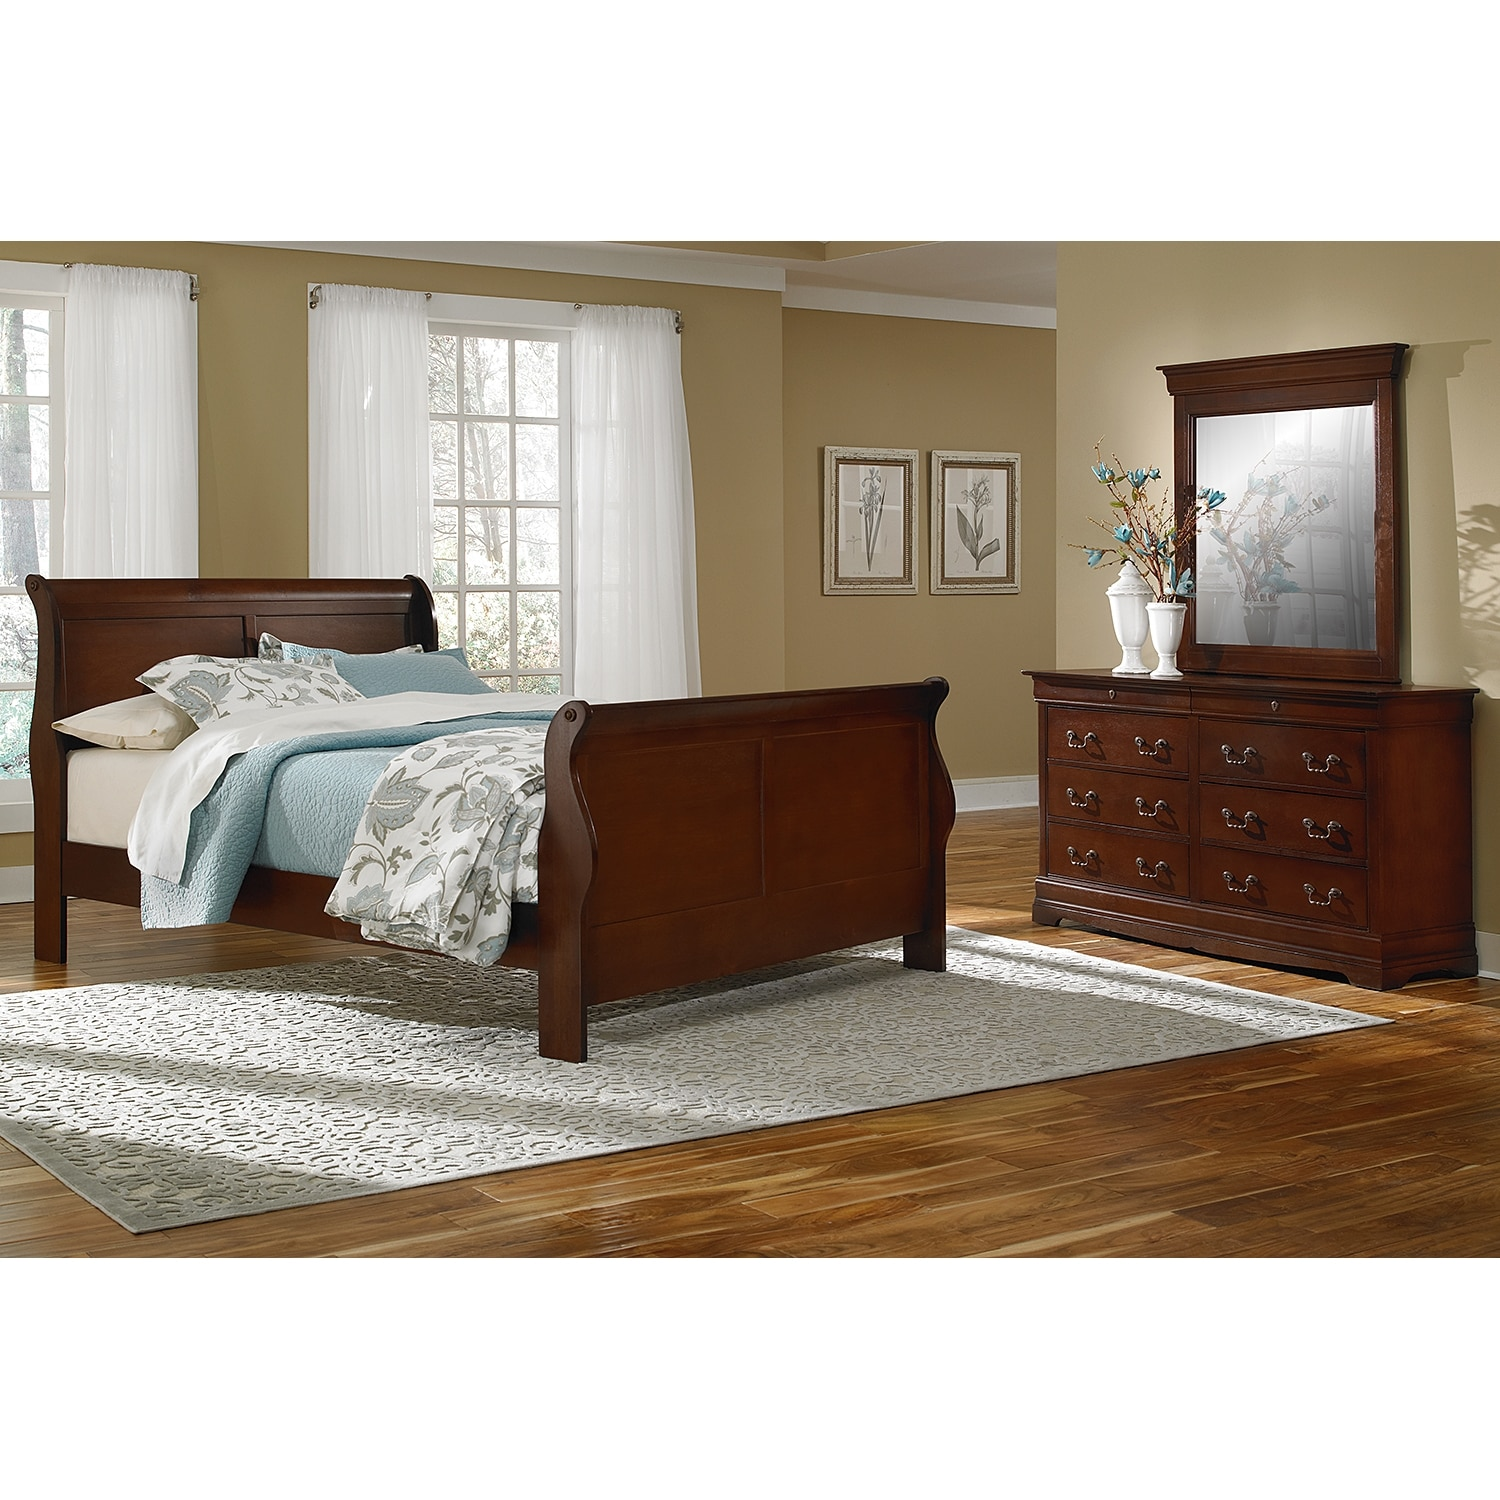 Bedroom Furniture - Neo Classic 5-Piece Queen Bedroom Set - Cherry